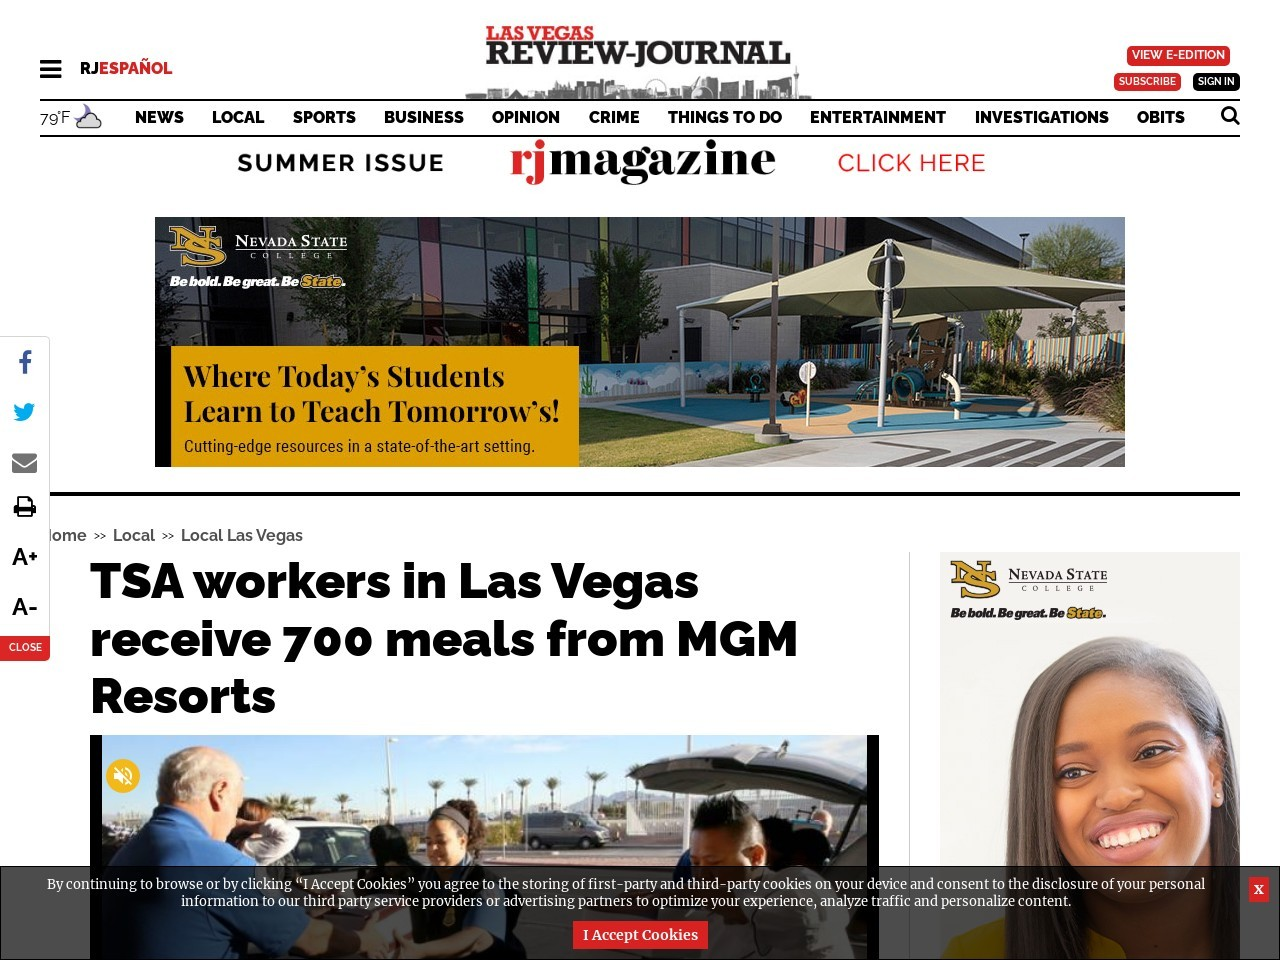 TSA workers in Las Vegas receive 700 meals from MGM Resorts